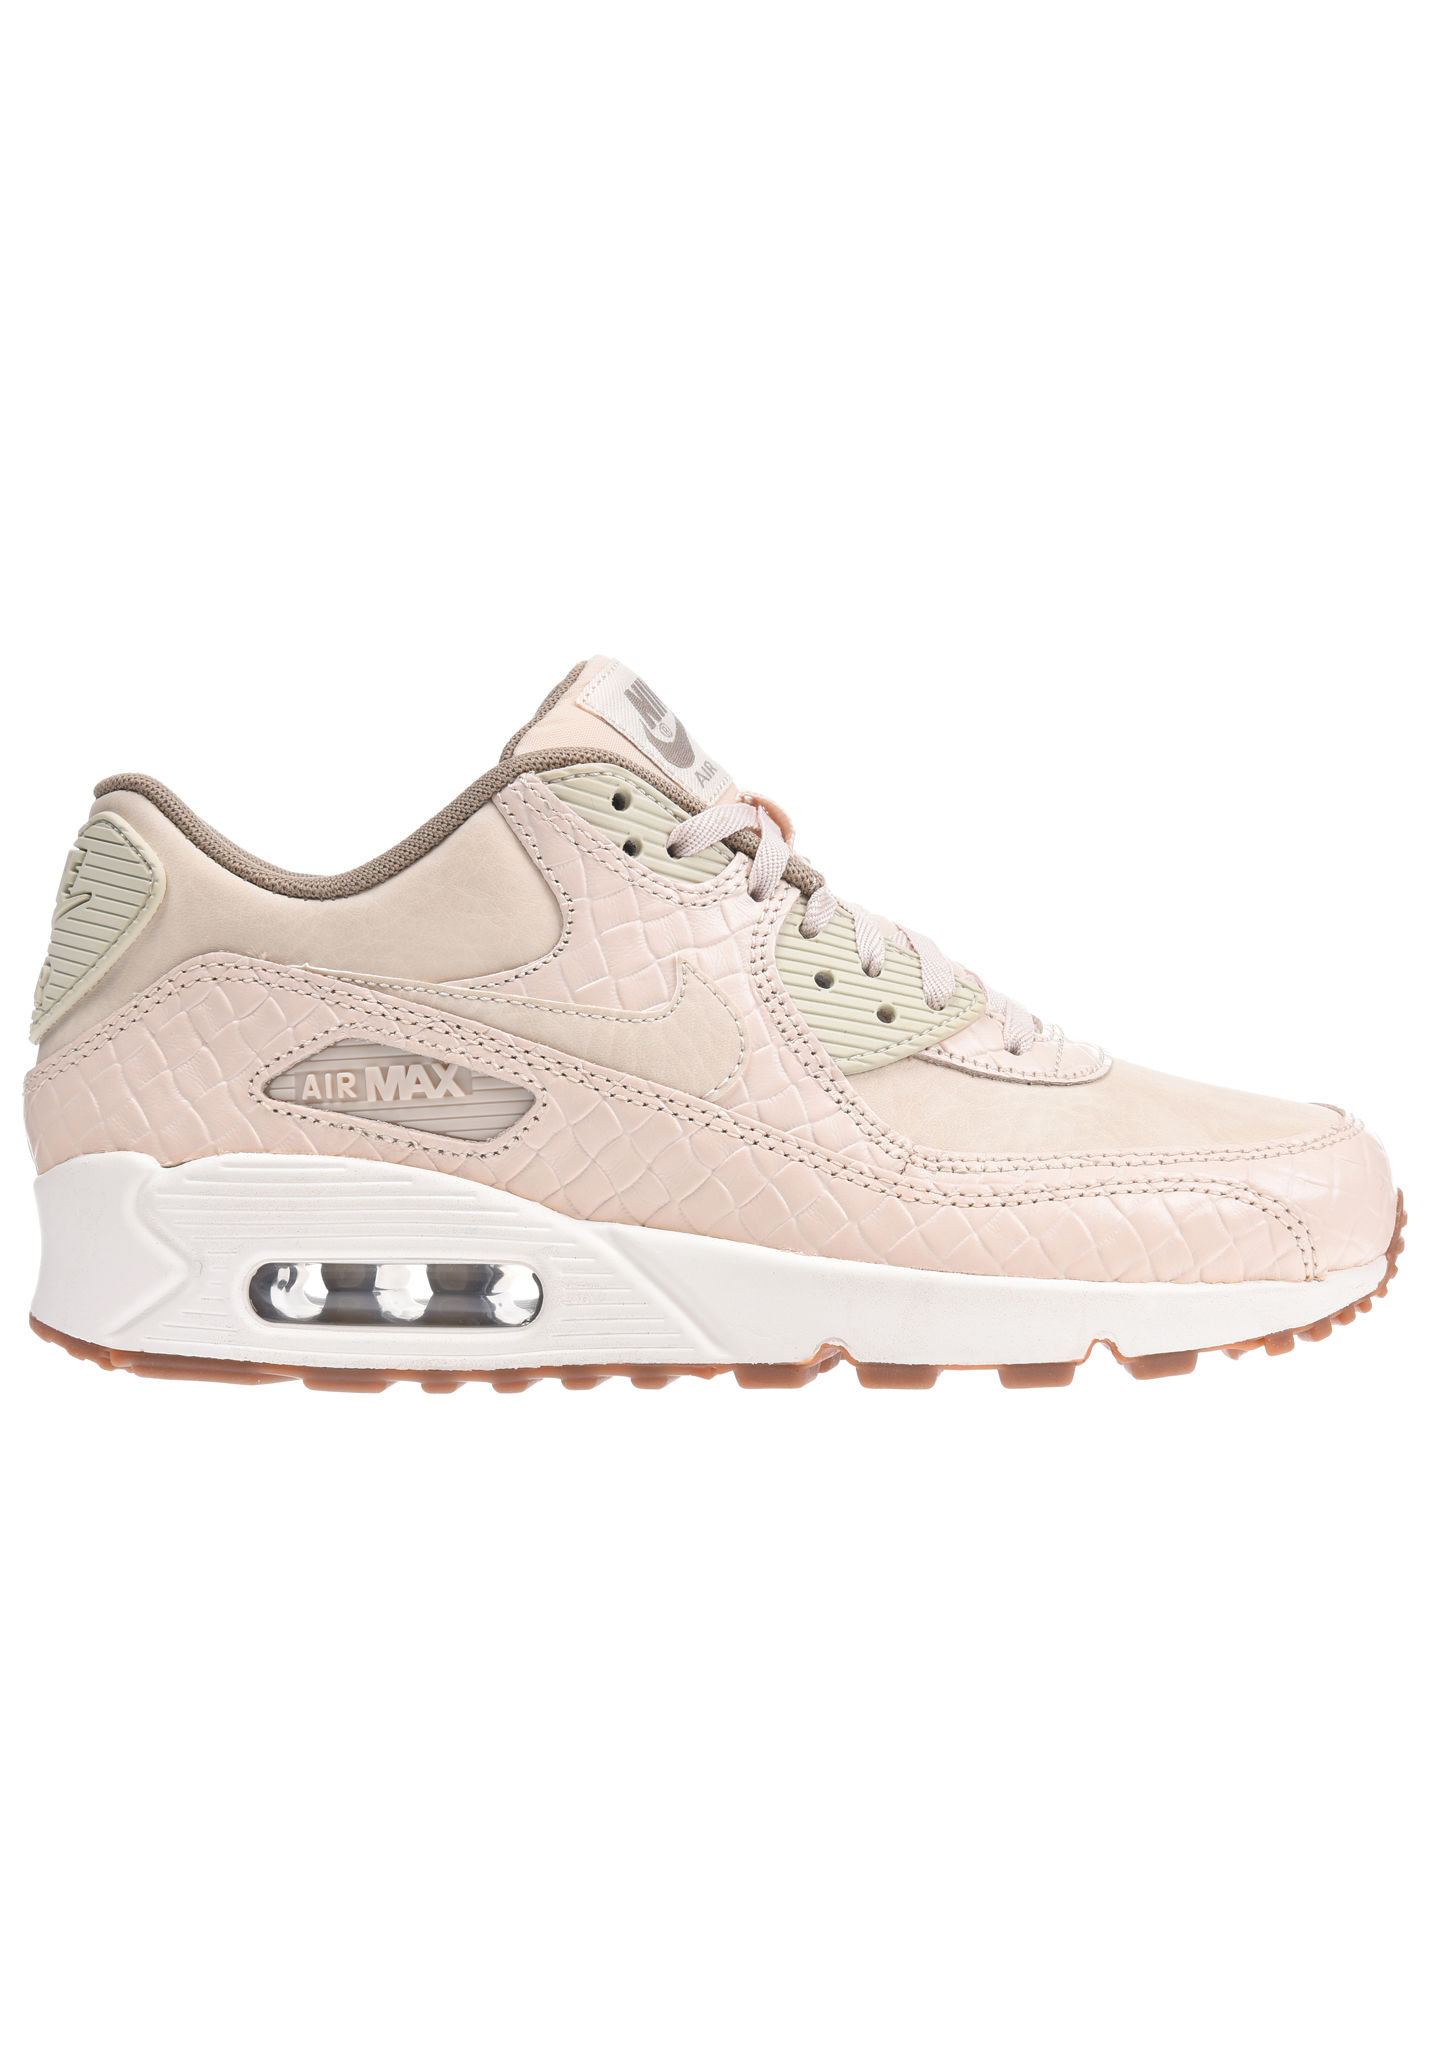 nike air max 90 femme beige. Black Bedroom Furniture Sets. Home Design Ideas